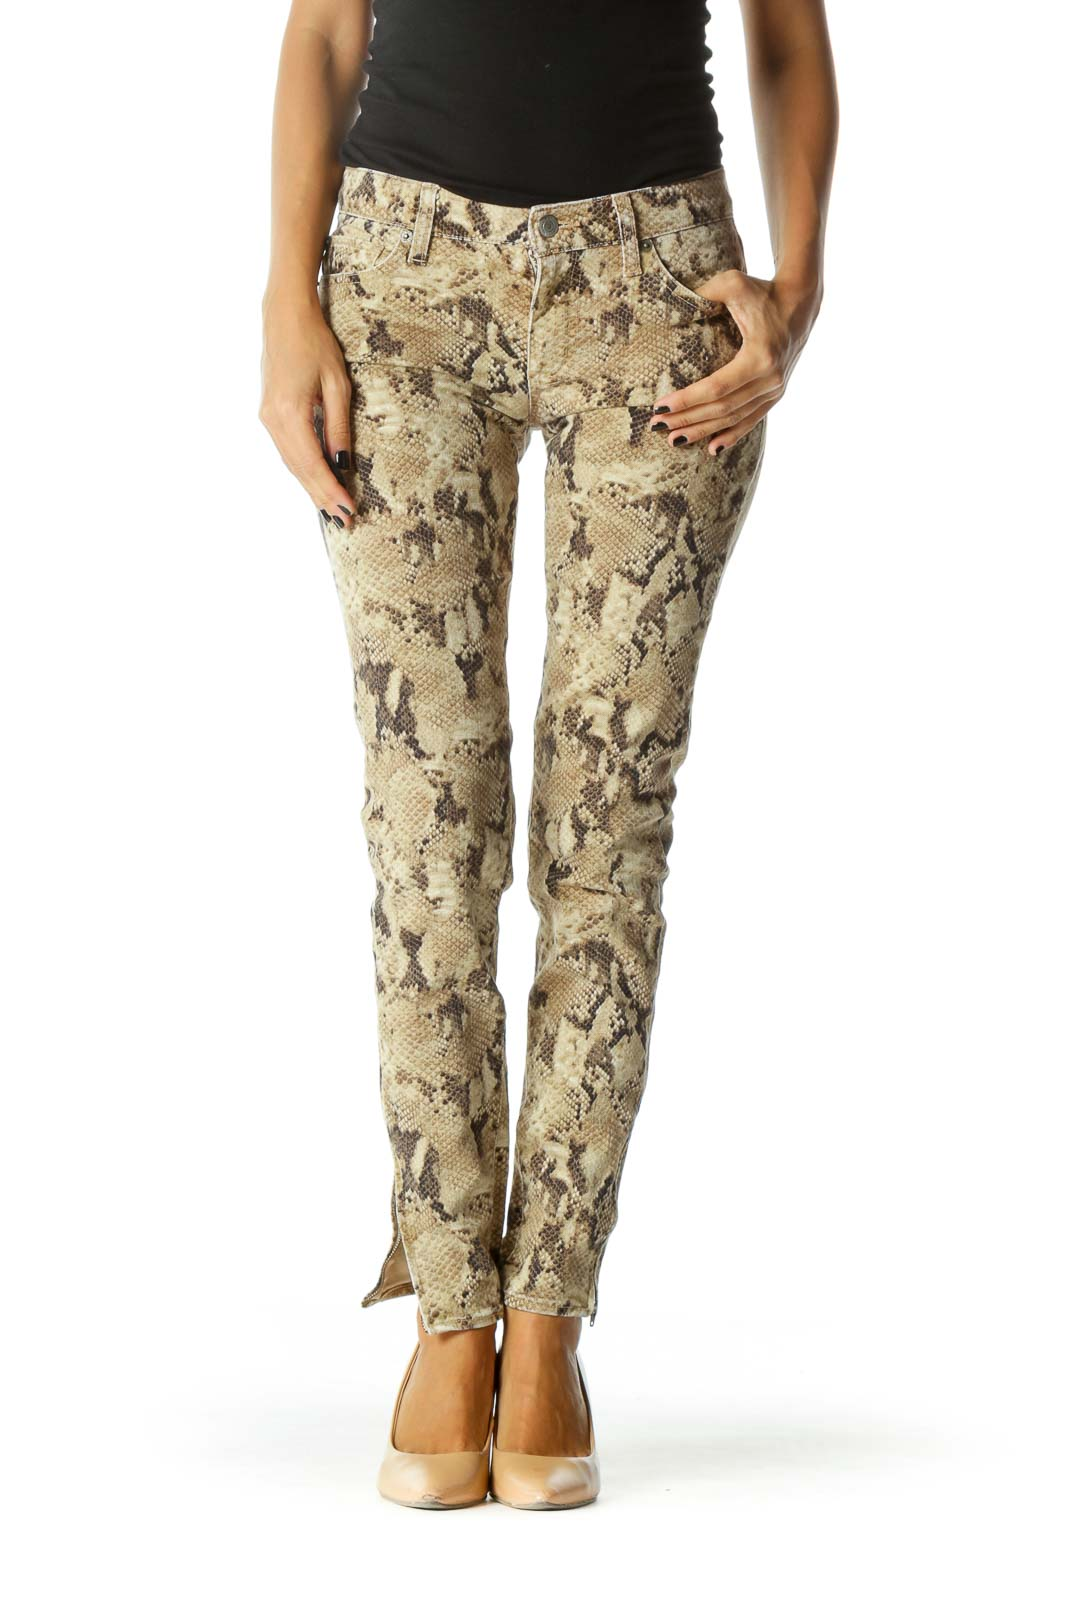 Brown Beige Black Snake Print Ankle Zippers Pants